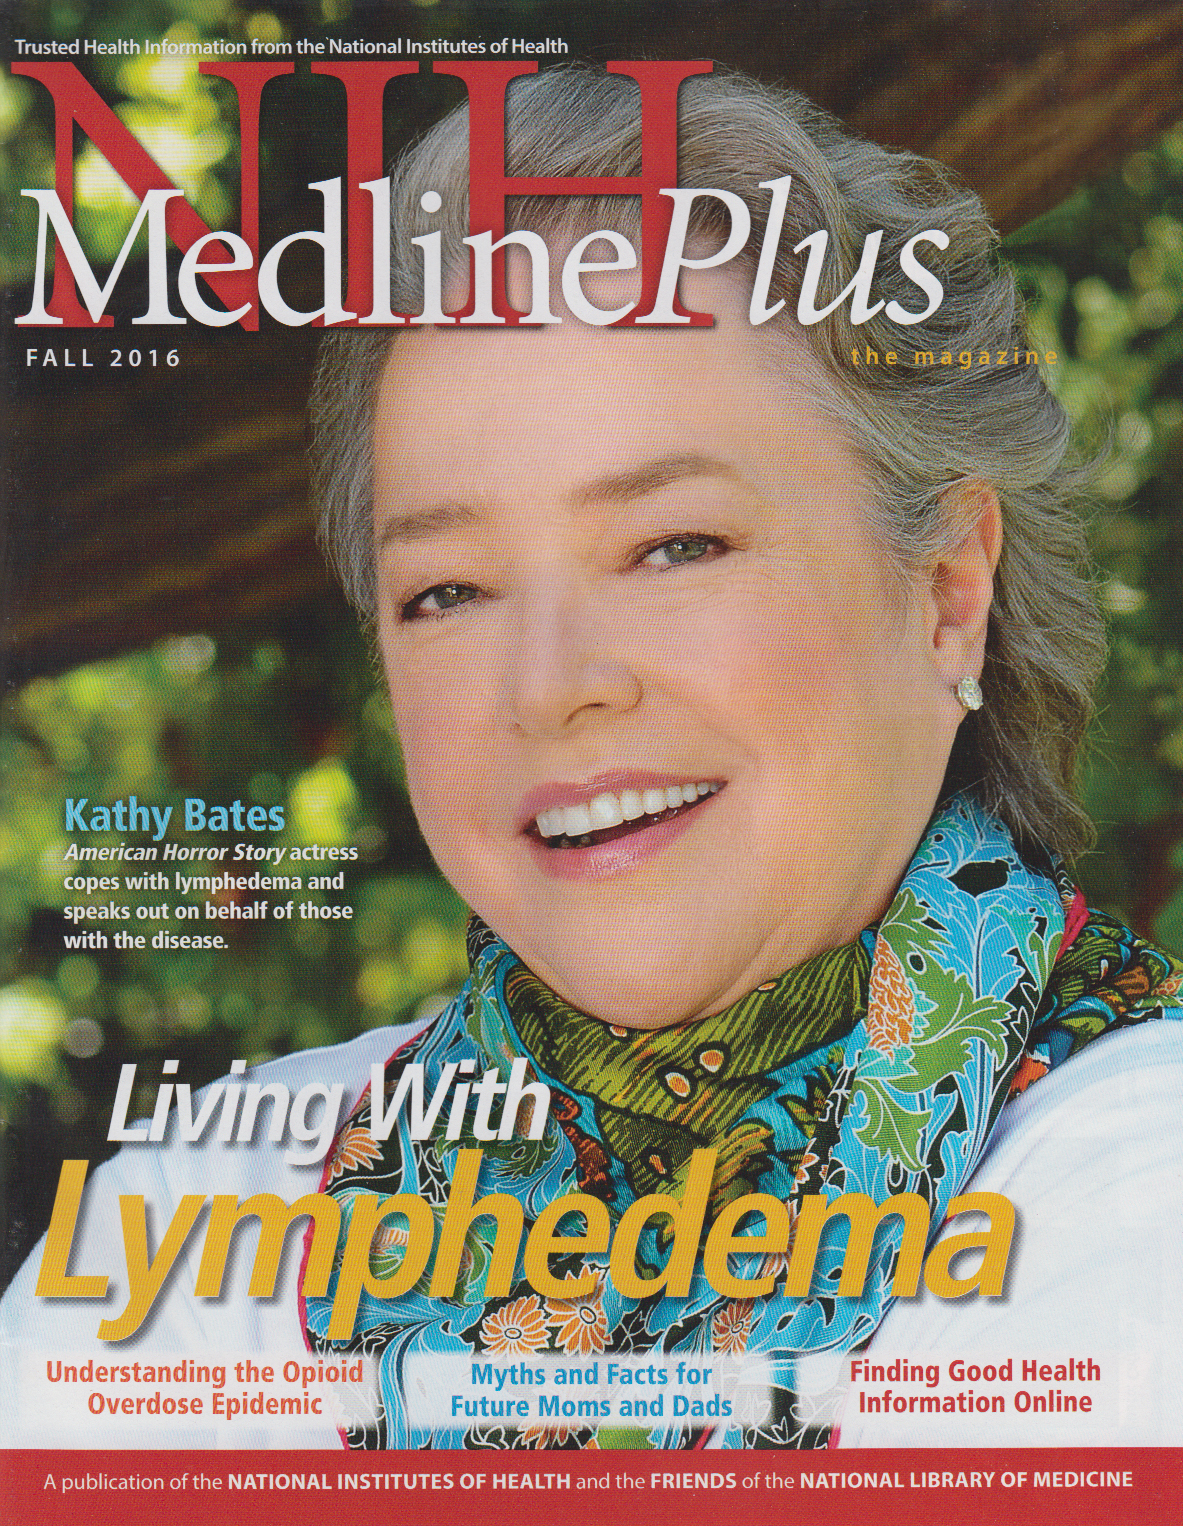 Cover of NIH MedlinePlus the Magazine Fall 2016 Issue